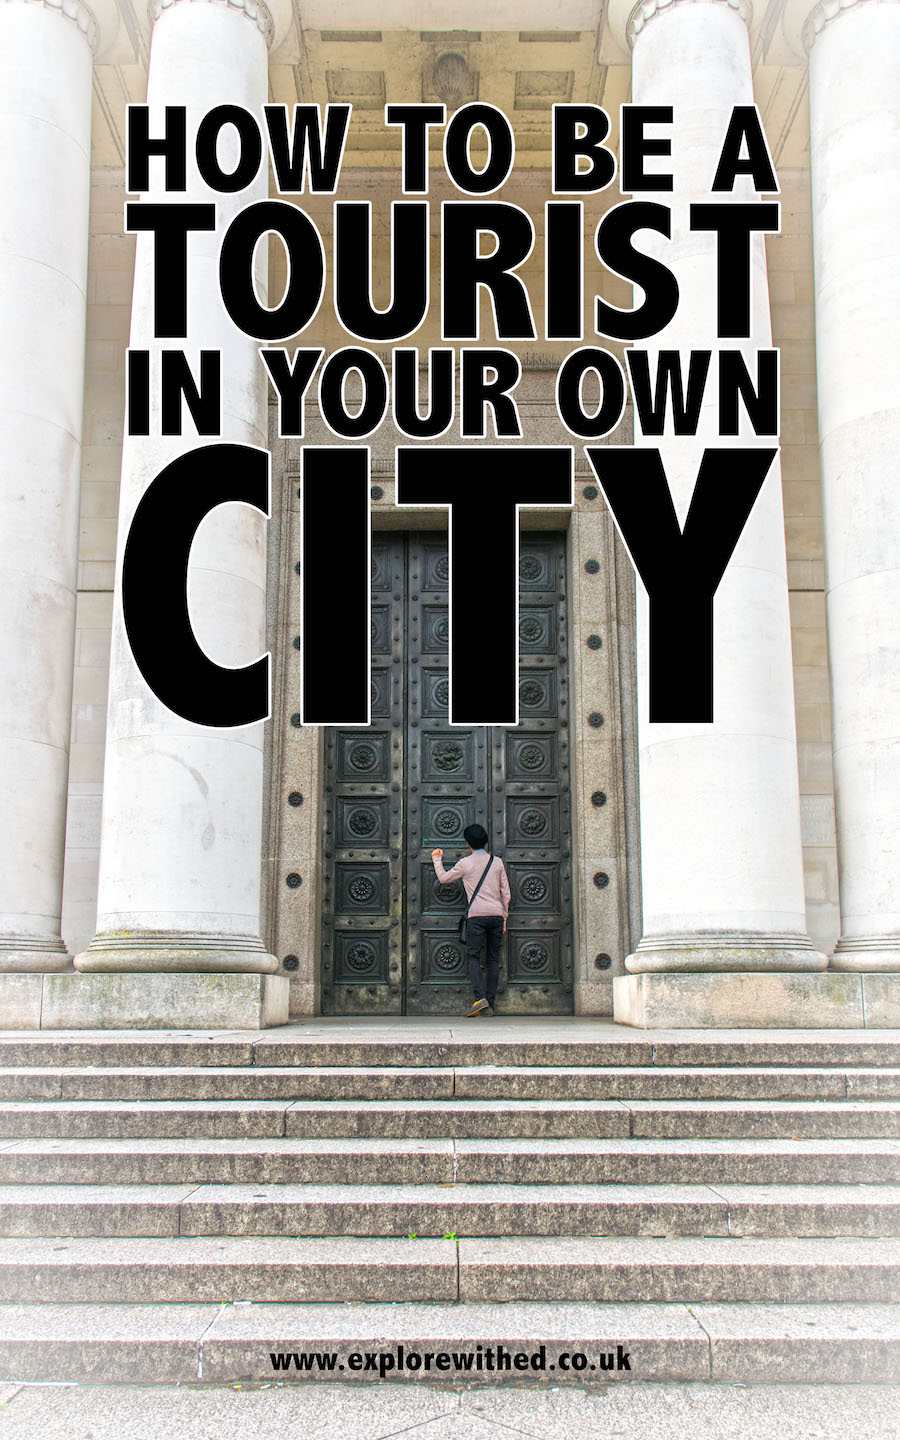 Tips on how to be a tourist in your own city featuring ideas of things to do in Cardiff